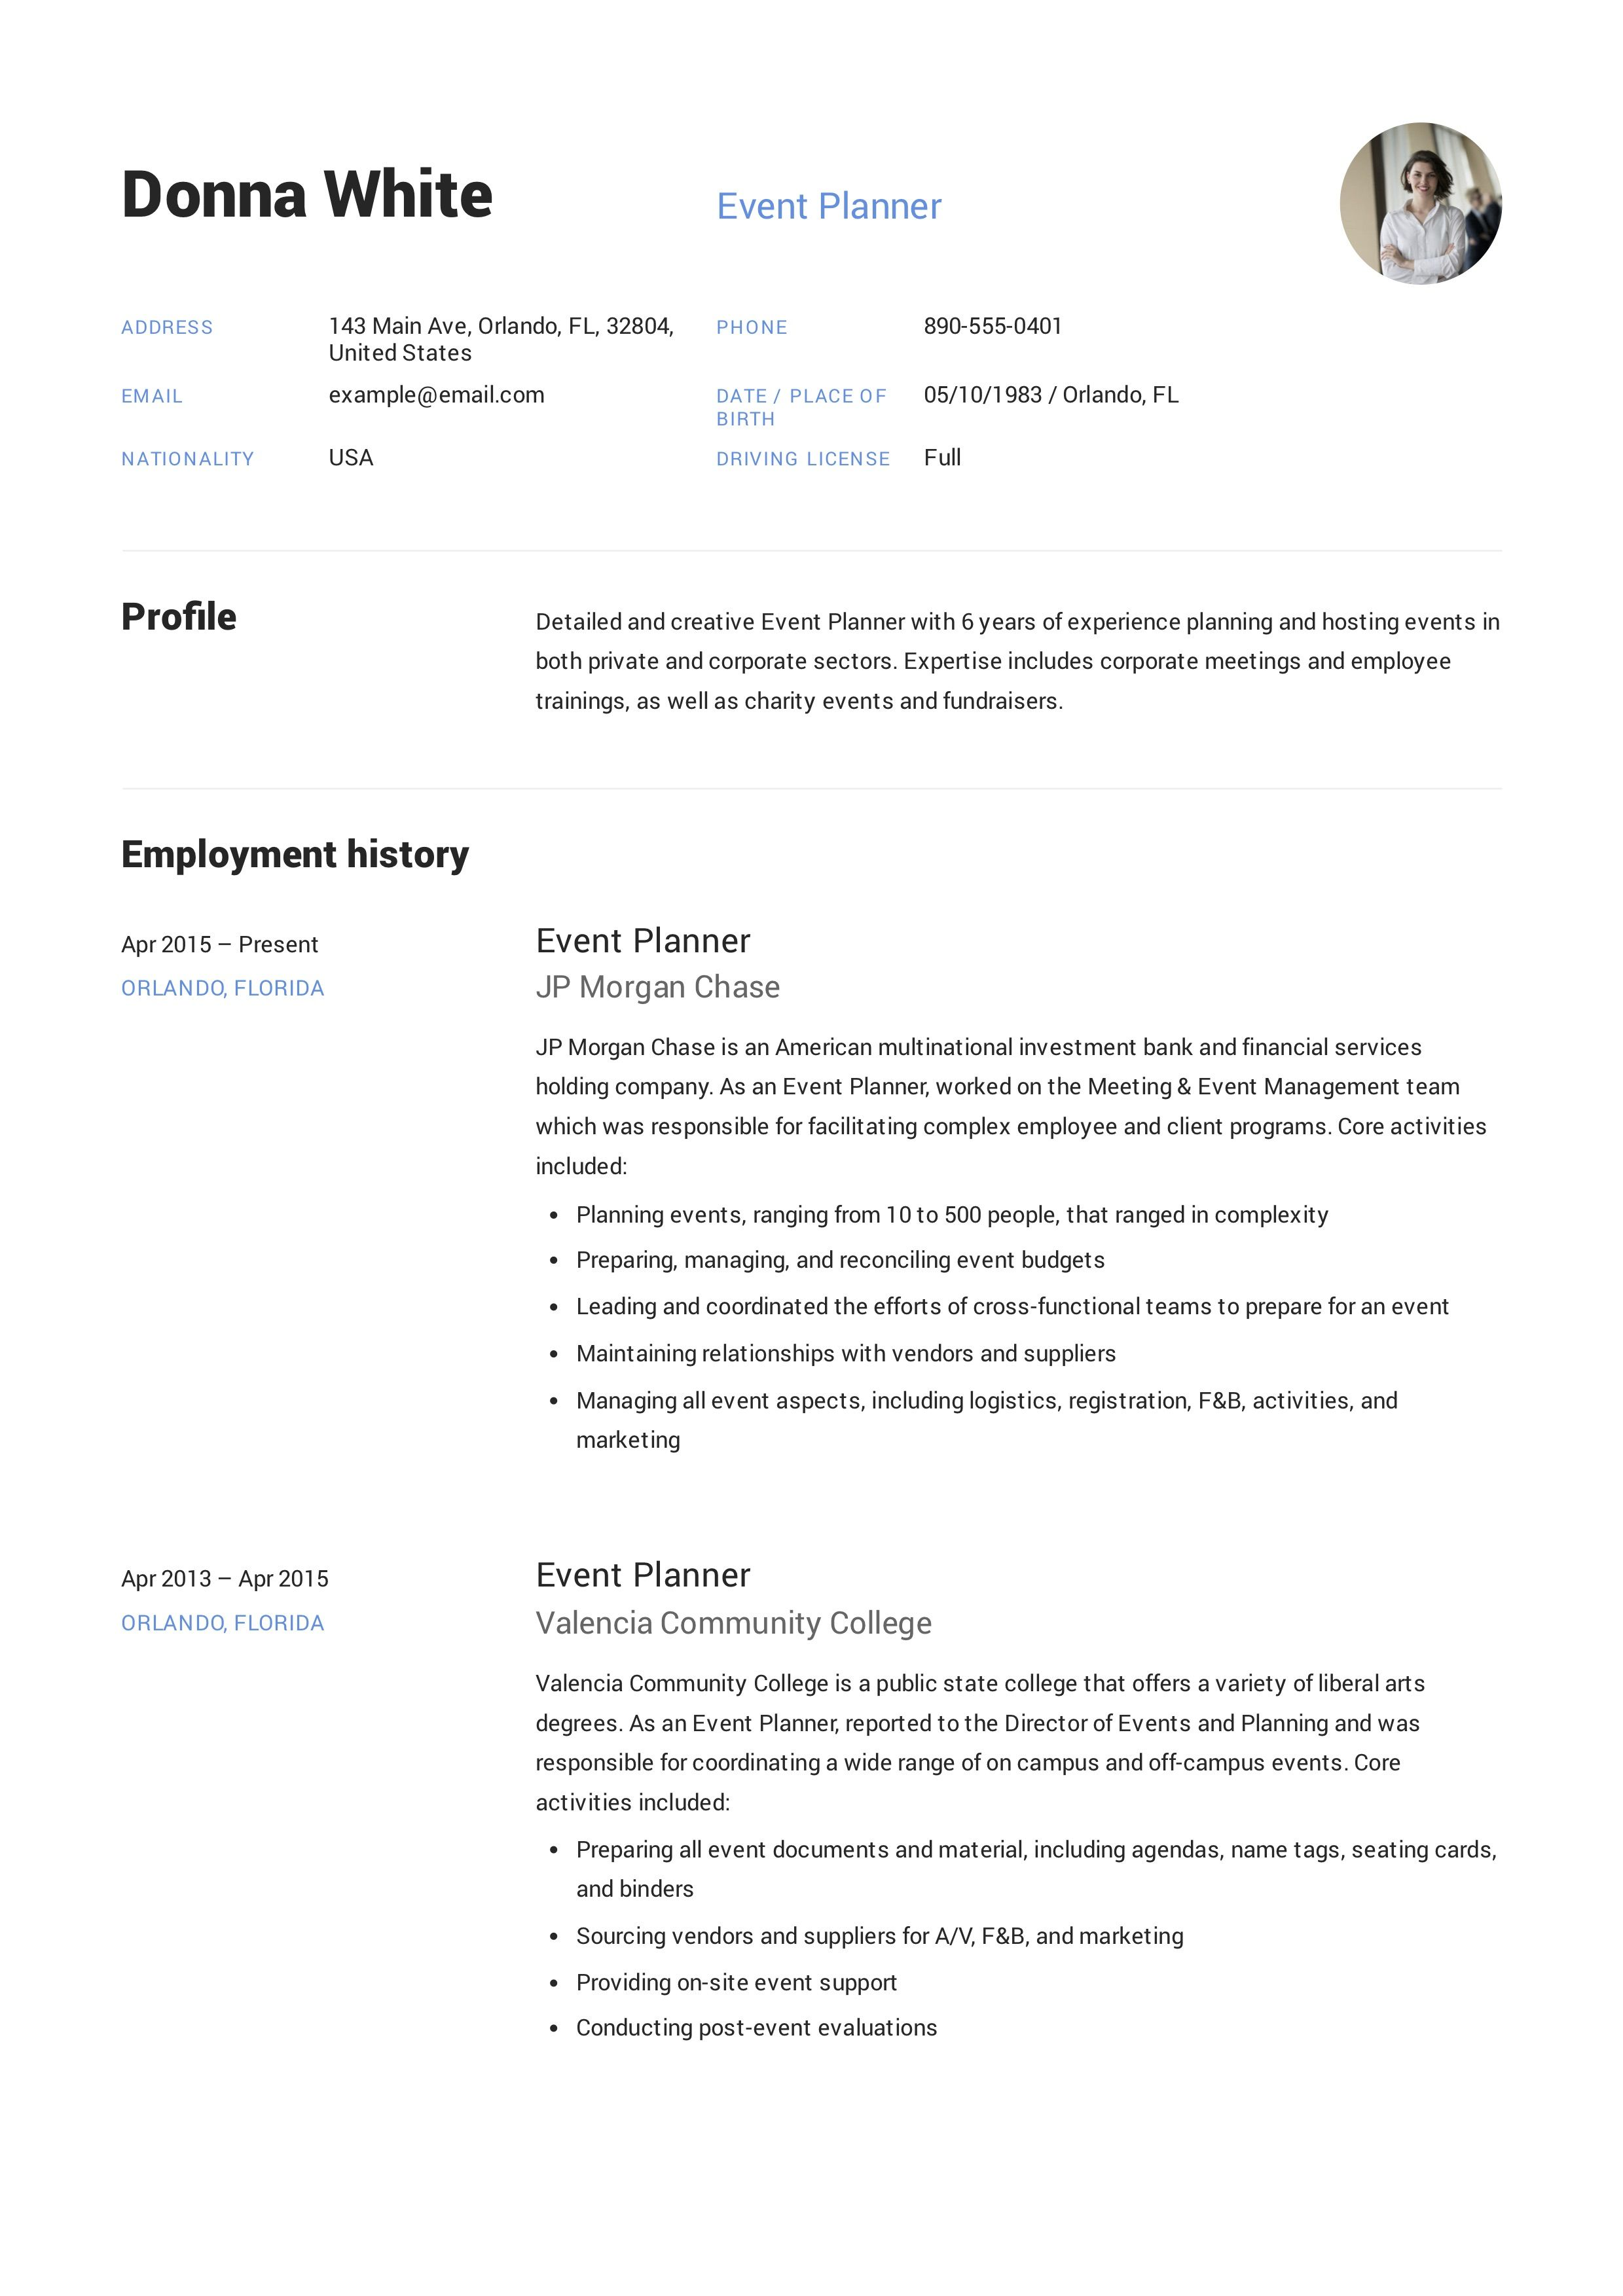 Event Planner Resume Event Planner Resume Resume Event Planner